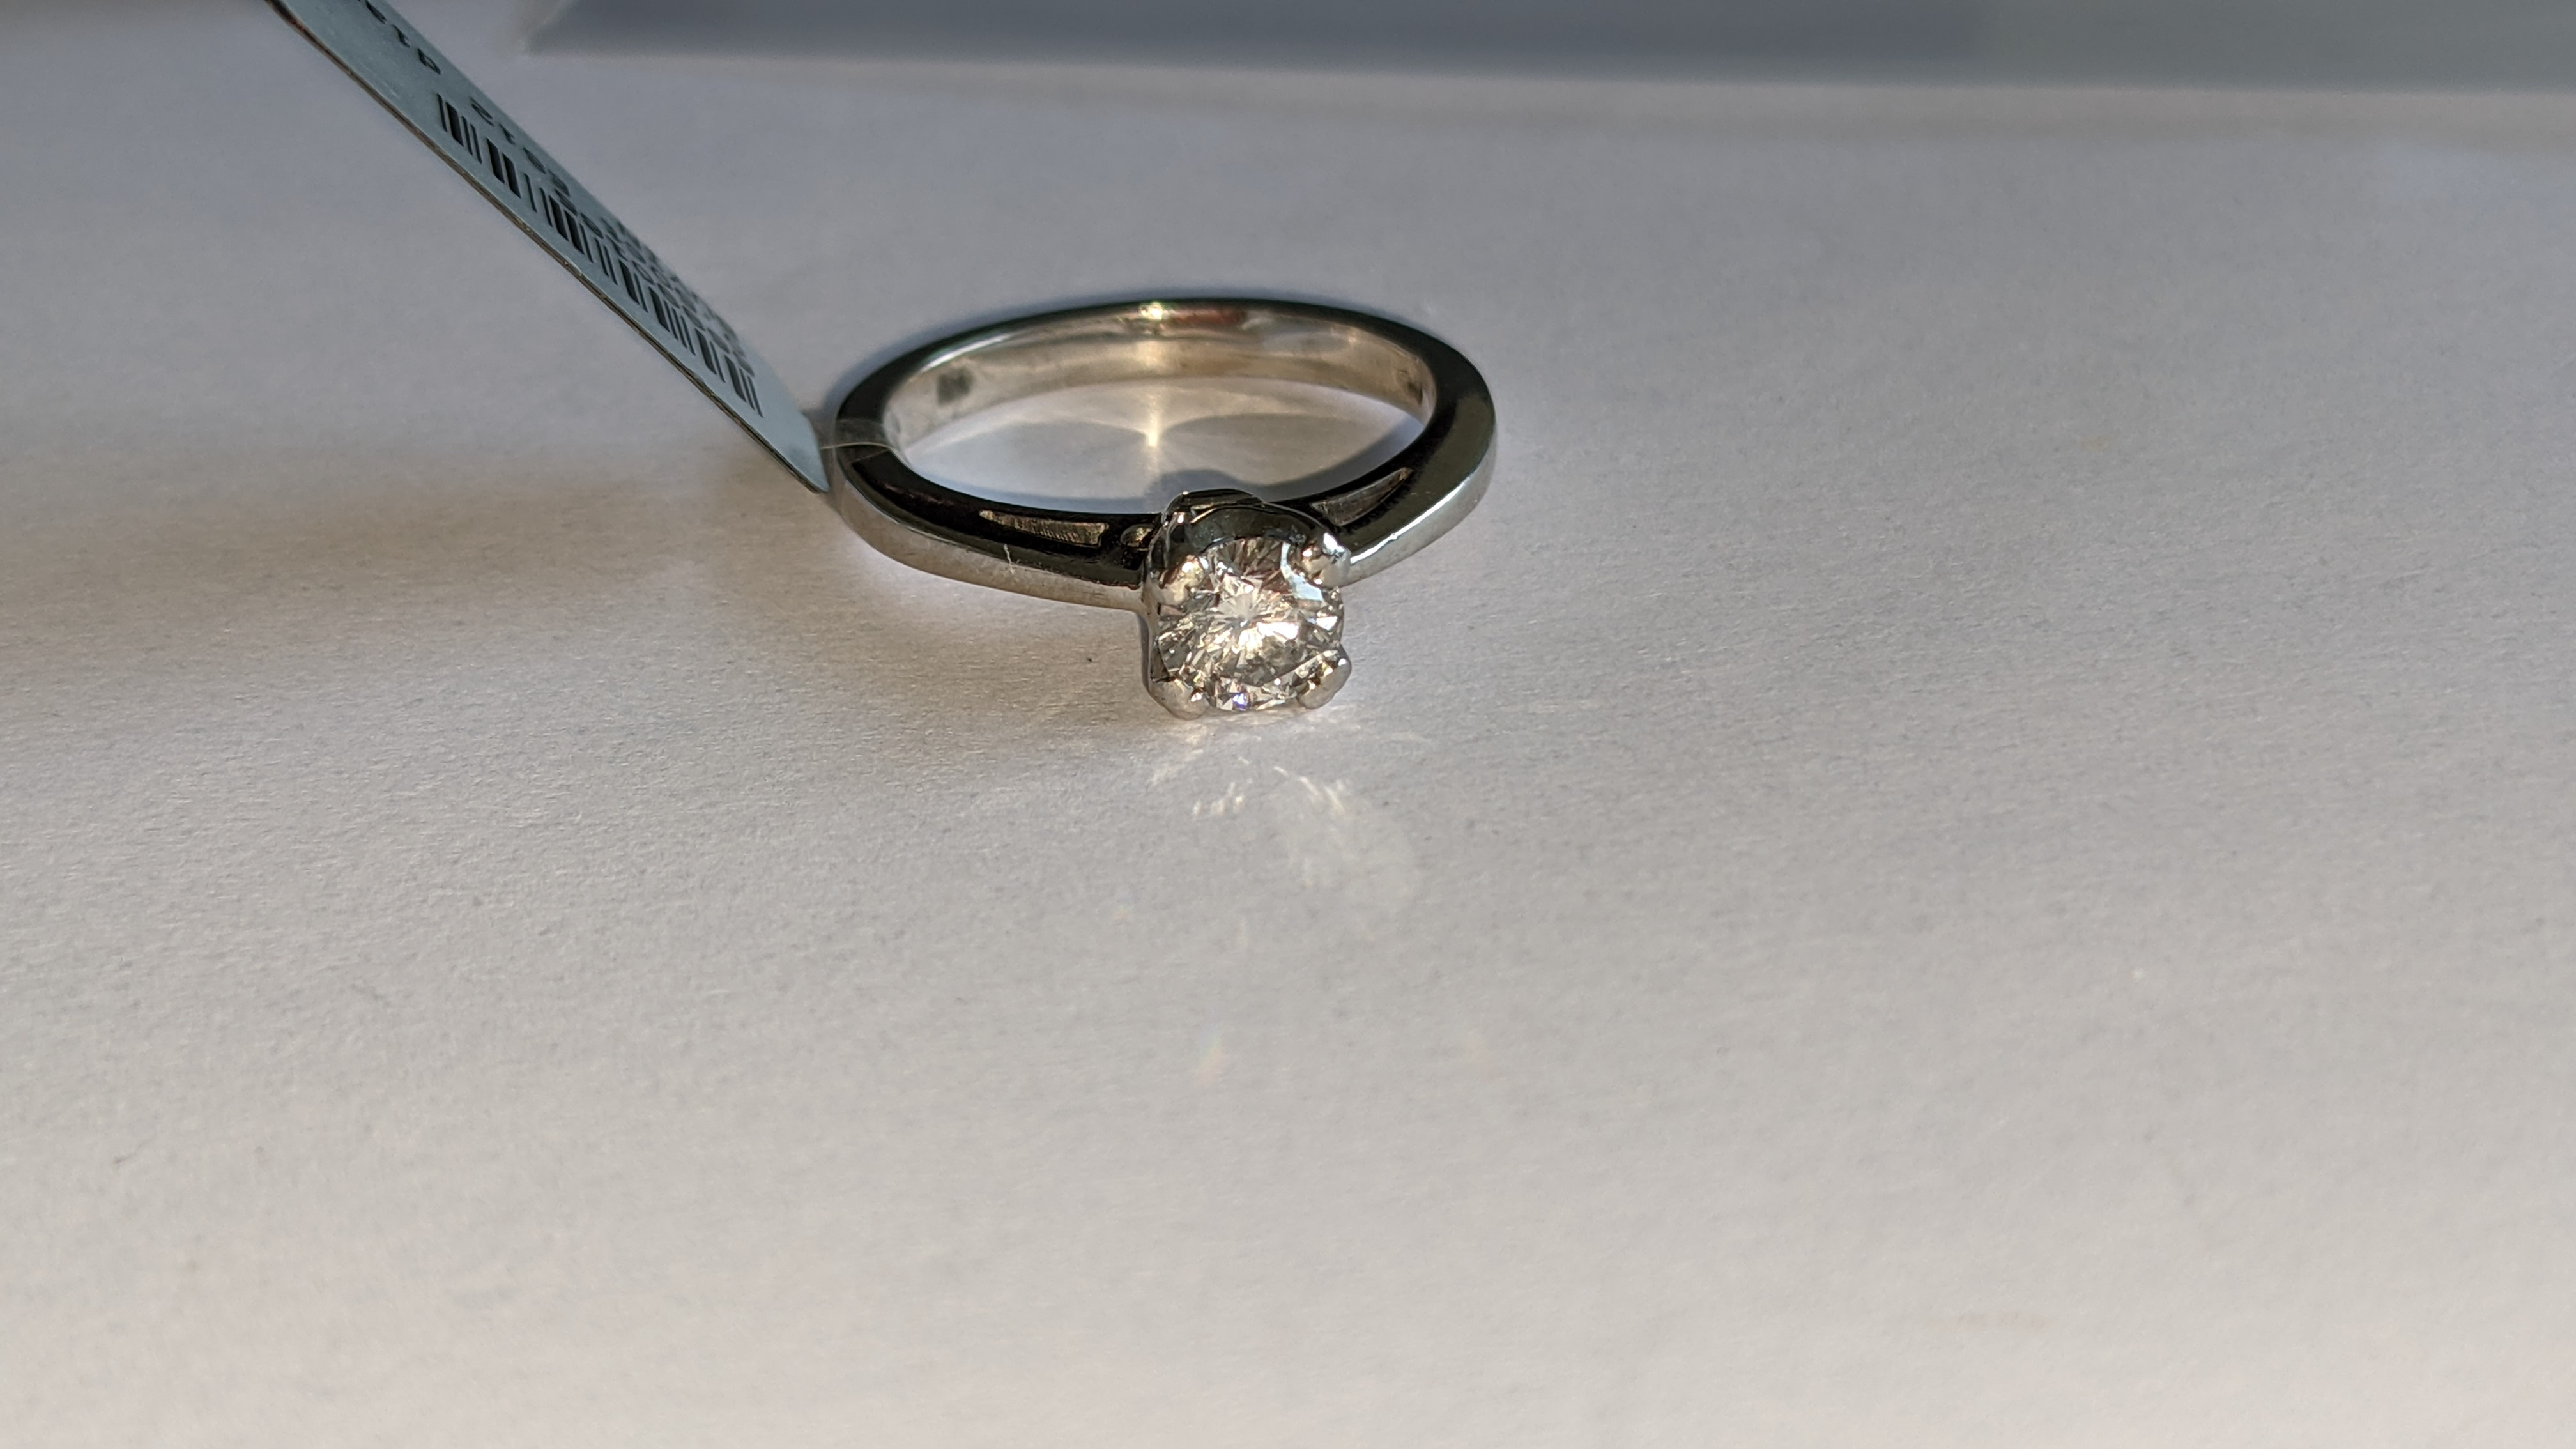 Platinum 950 ring with 0.50ct diamond. Includes diamond report/certification indicating the central - Image 8 of 25